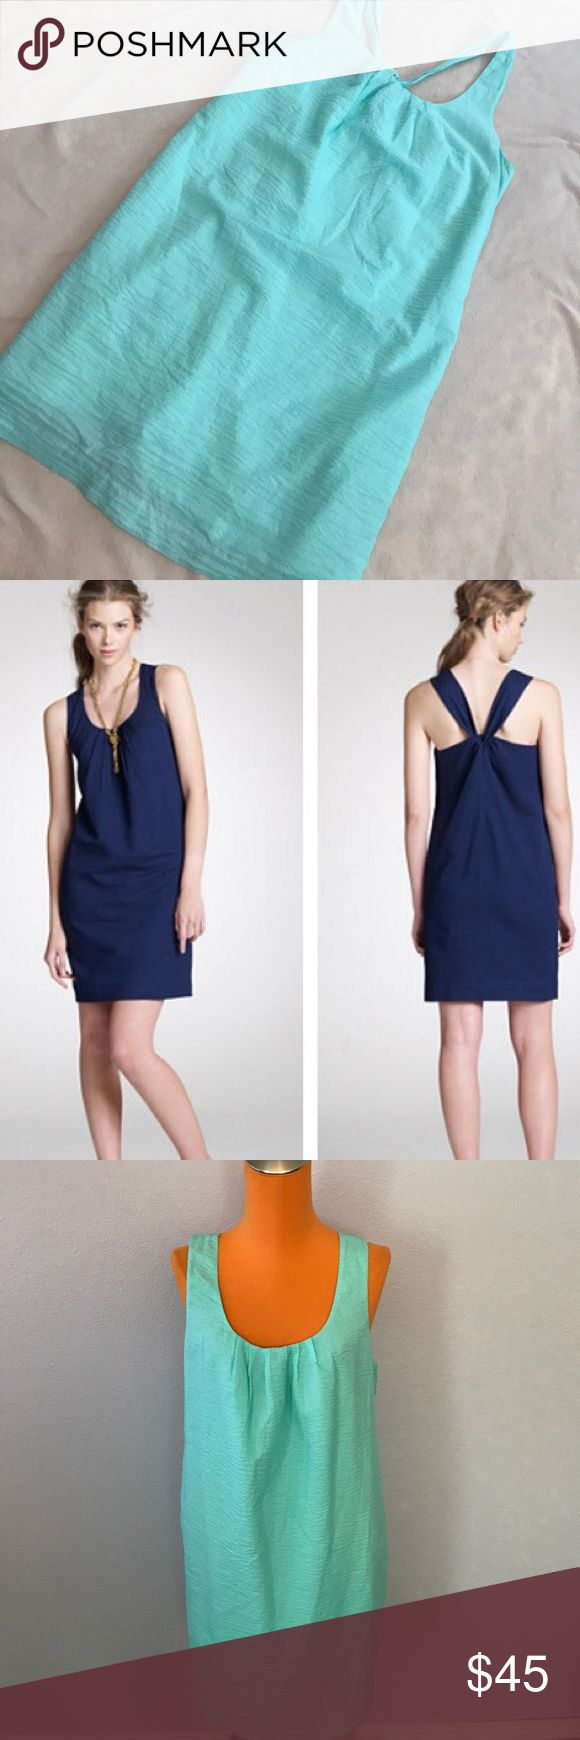 """J Crew Embossed Light Blue Playa Cross Back Dress Light blue color. A Line Criss cross back. Lightweight material. Lined on inside. Sundress. 35"""" length 18"""" armpit to armpit. Model is wearing same style just different color. Excellent condition. Bundle 2+ items for a discount J. Crew Dresses Midi"""